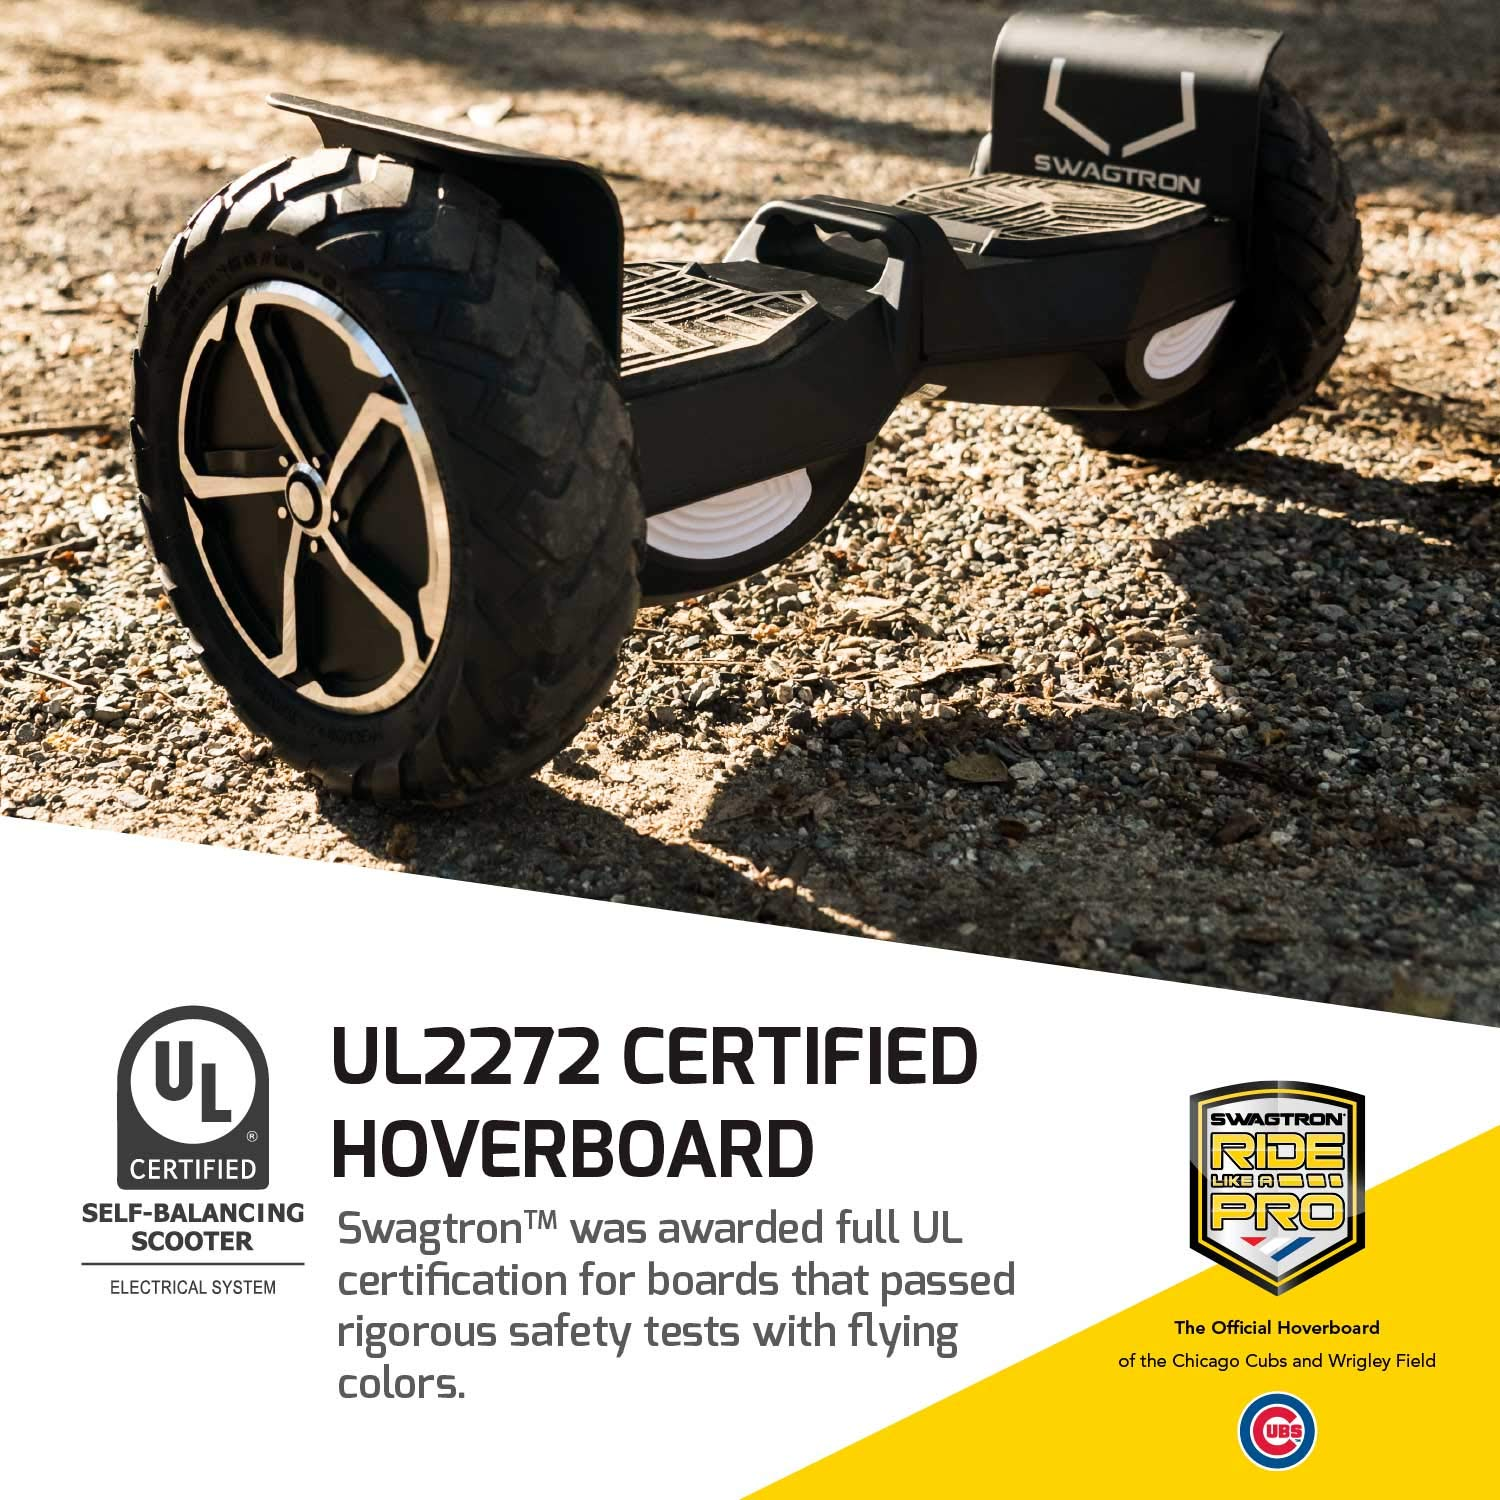 Swagtron Swagboard Outlaw T6 Off-Road Hoverboard - First in The World to Handle Over 380 LBS, Up to 12 MPH, UL2272 Certified, 10' Wheel (Black)